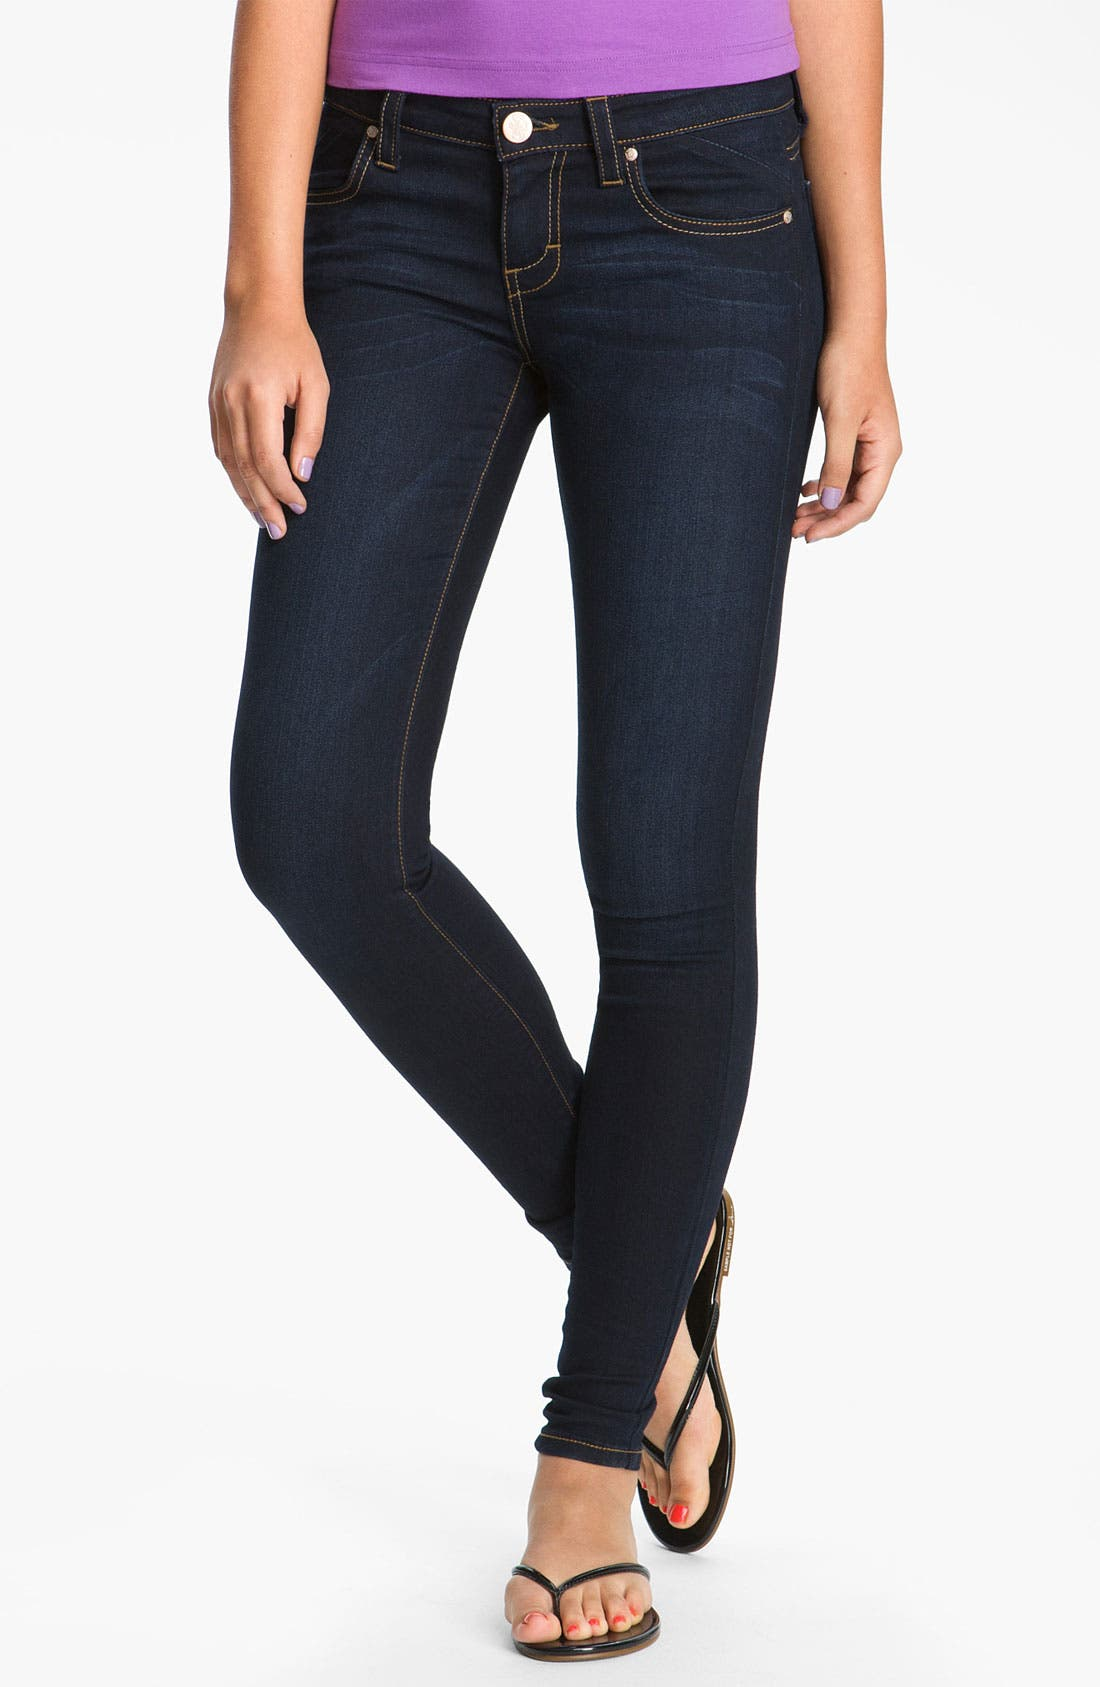 Main Image - STS Blue Skinny Jeans (Brisbane Dark) (Juniors) (Online Only)